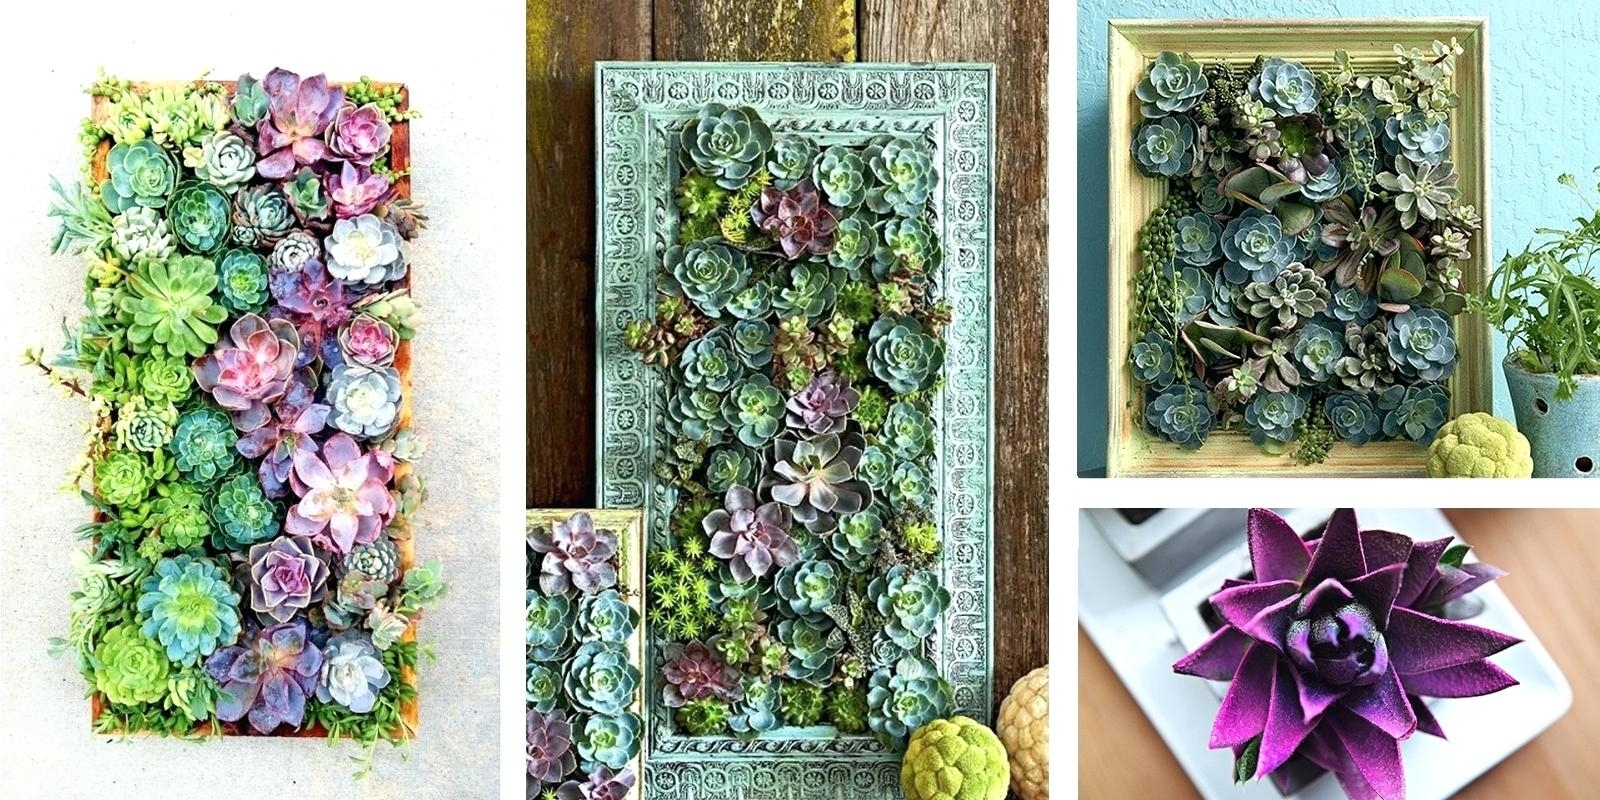 Succulent Wall Hanging Art Kit Decor Diy – Restorethelakes For Latest Succulent Wall Art (View 17 of 20)